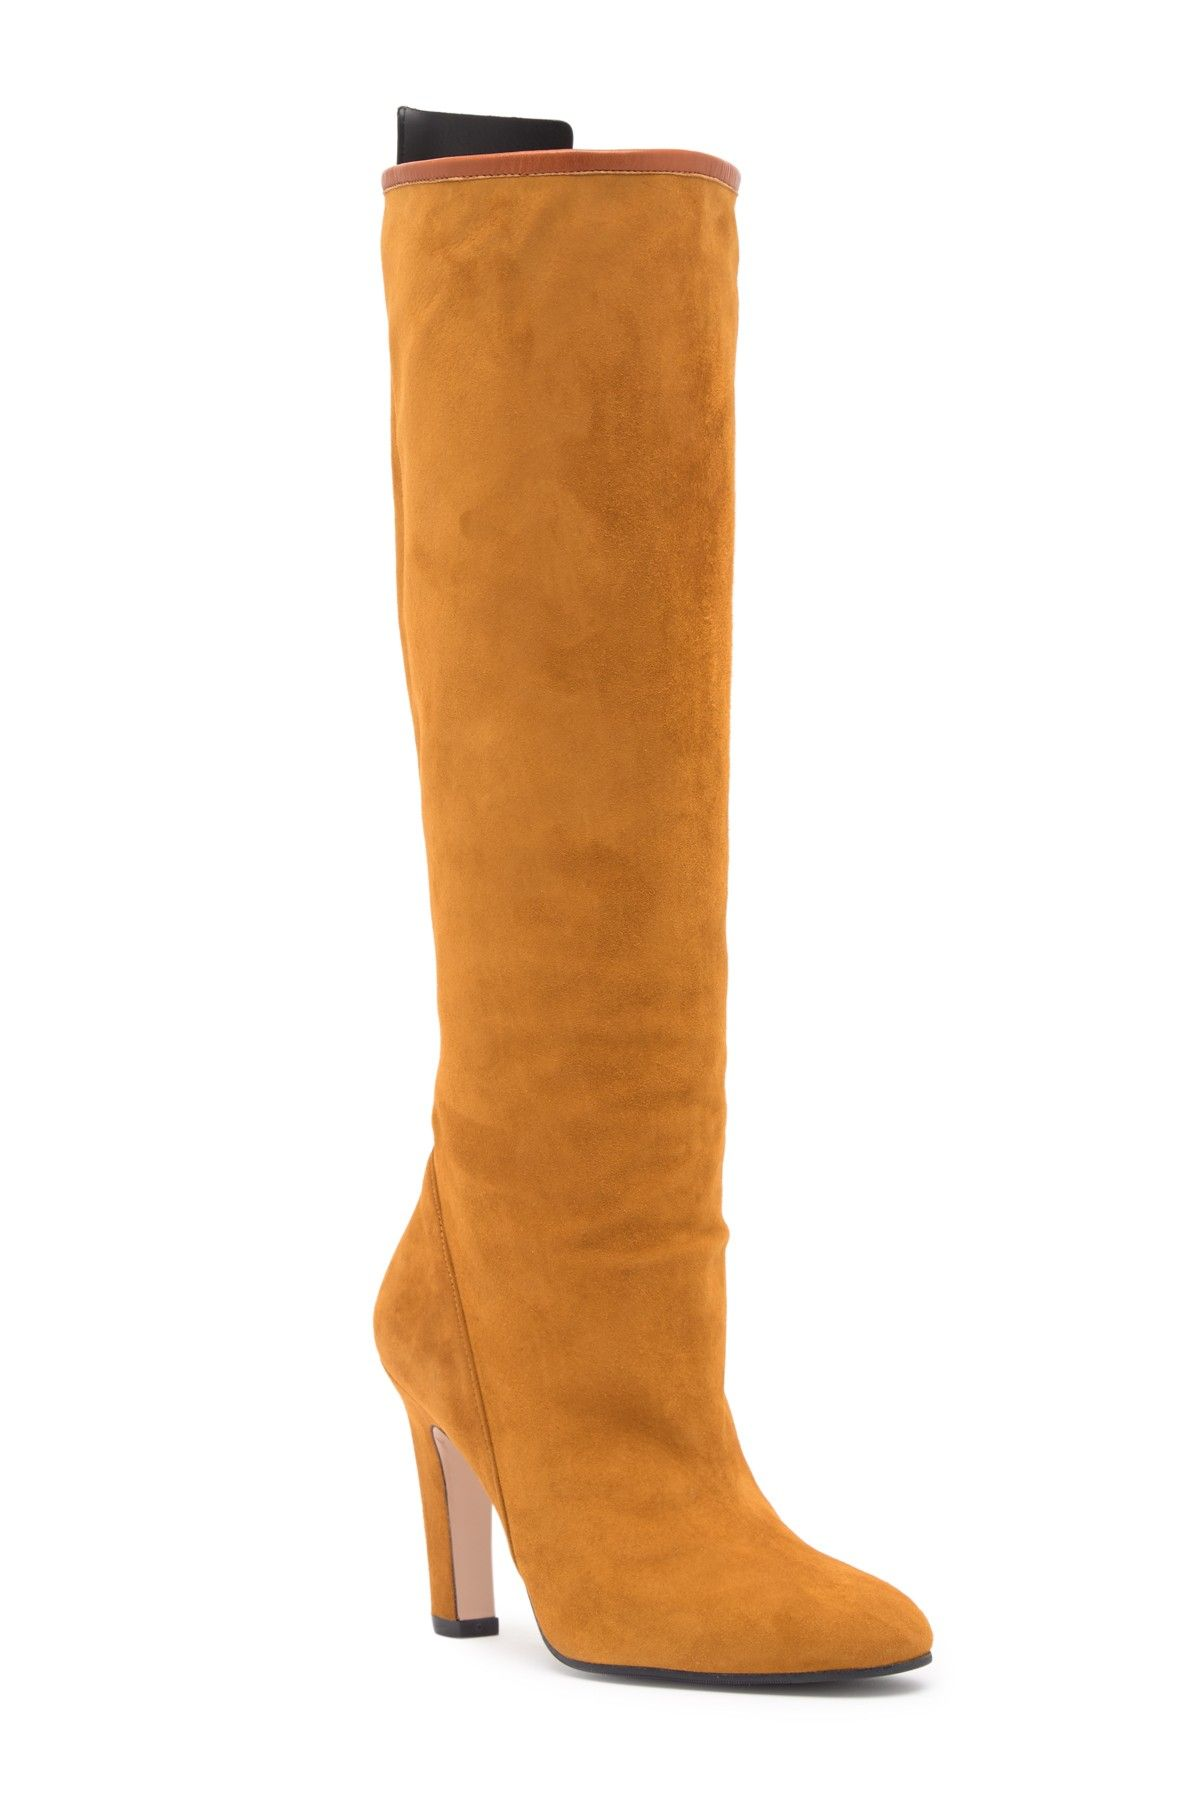 69e5e90de Stuart Weitzman - Charlie Knee High Boot is now 0-69% off. Free Shipping on  orders over $100.